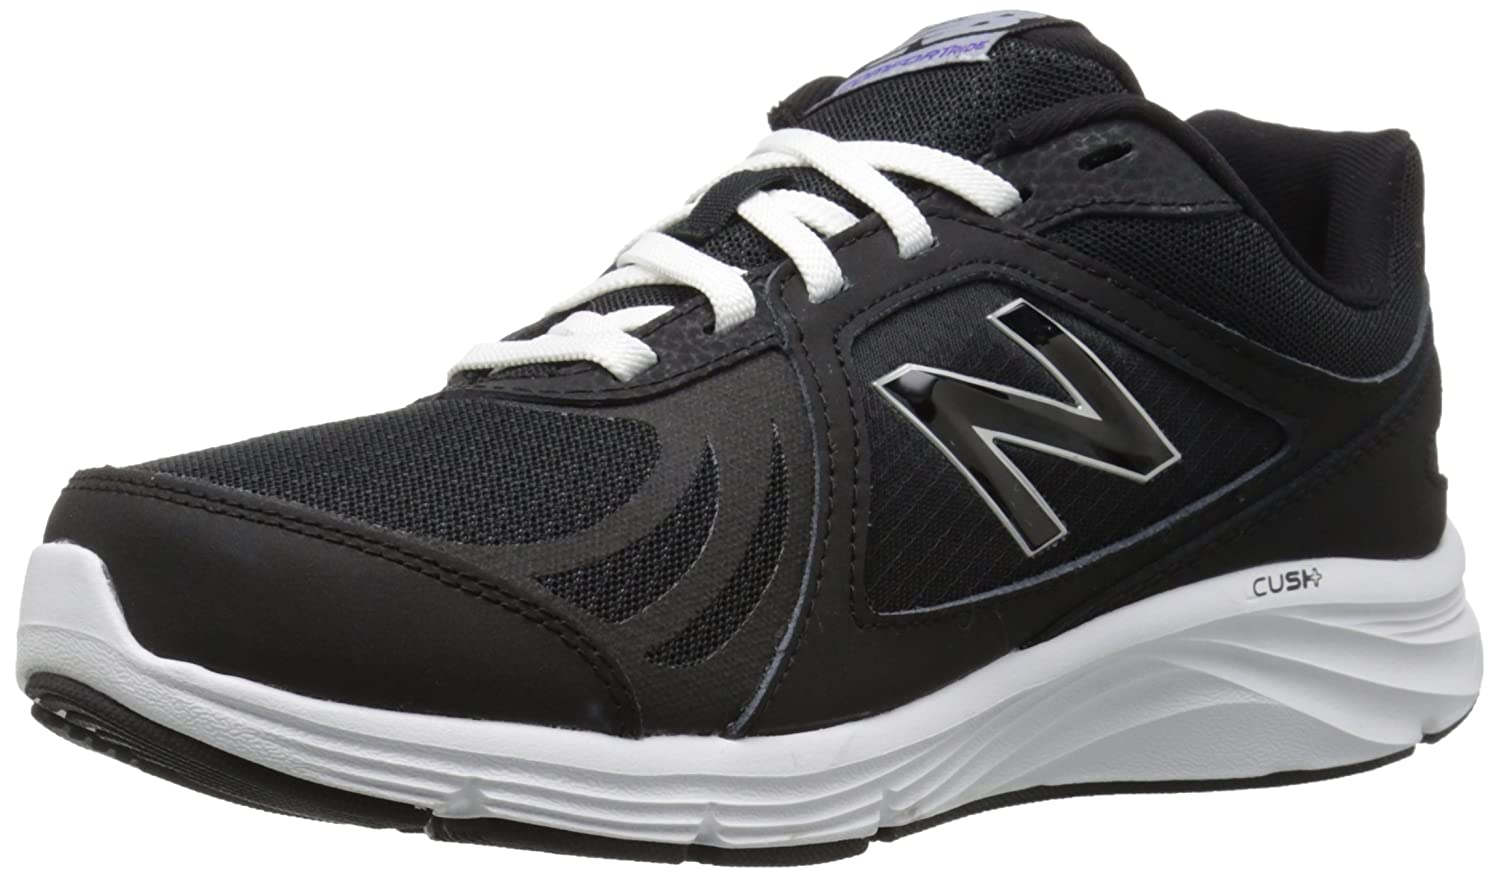 New Balance Women's WW496V3 Walking Shoe-W CUSH + Walking Shoe B012GZW3JM 9 D US|Black